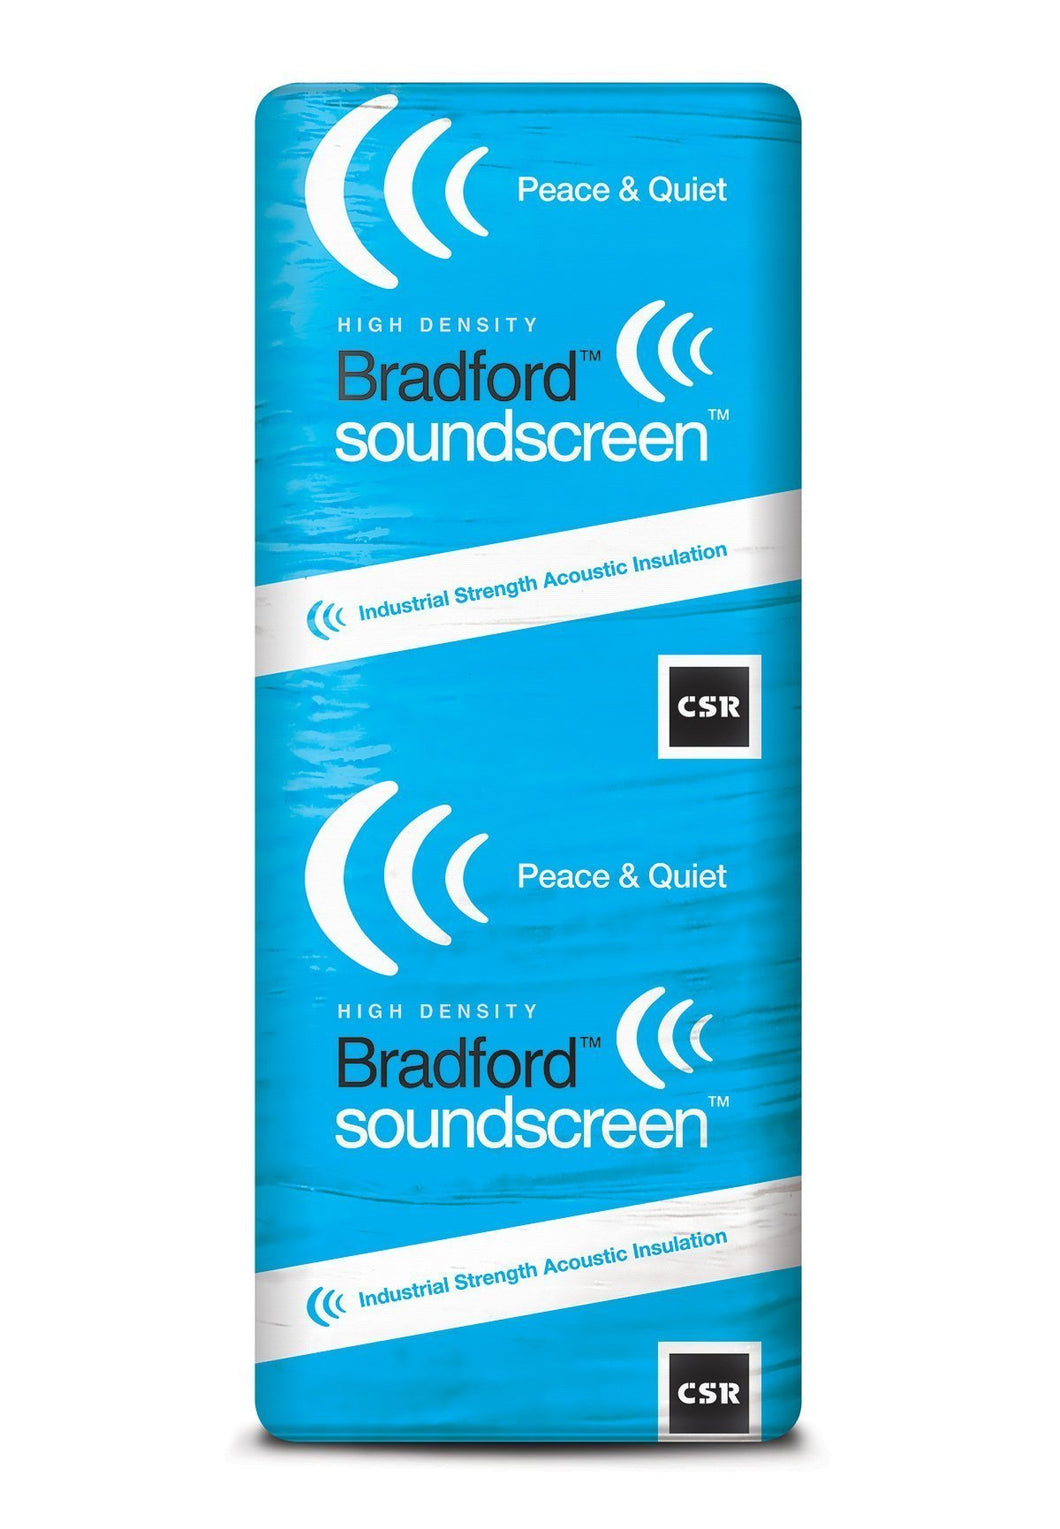 Bradford SoundScreen Acoustic Wall Insulation Batts - R1.7 - 1160 x 430mm - 5.5m²/pack - Patnicar Insulation